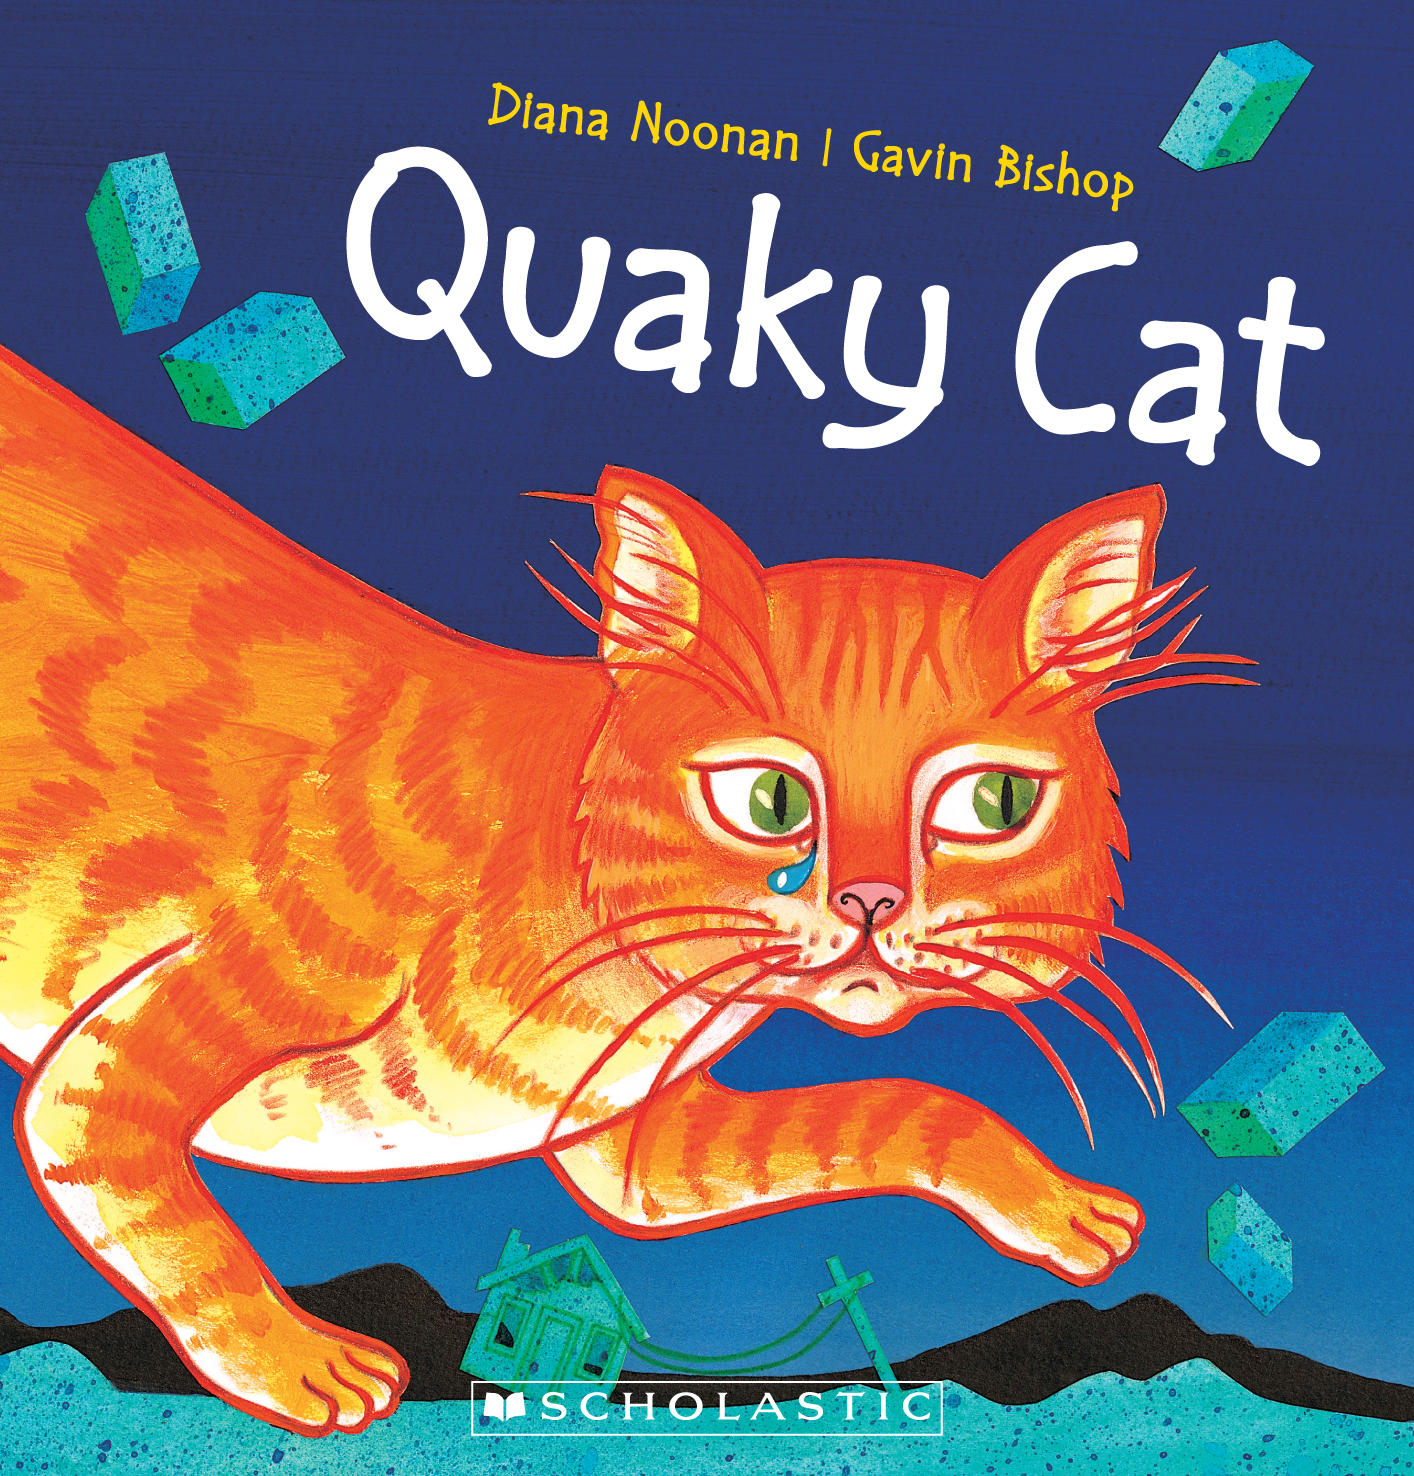 Book Cover Design New Zealand : What s happening in our world quaky cat two years on